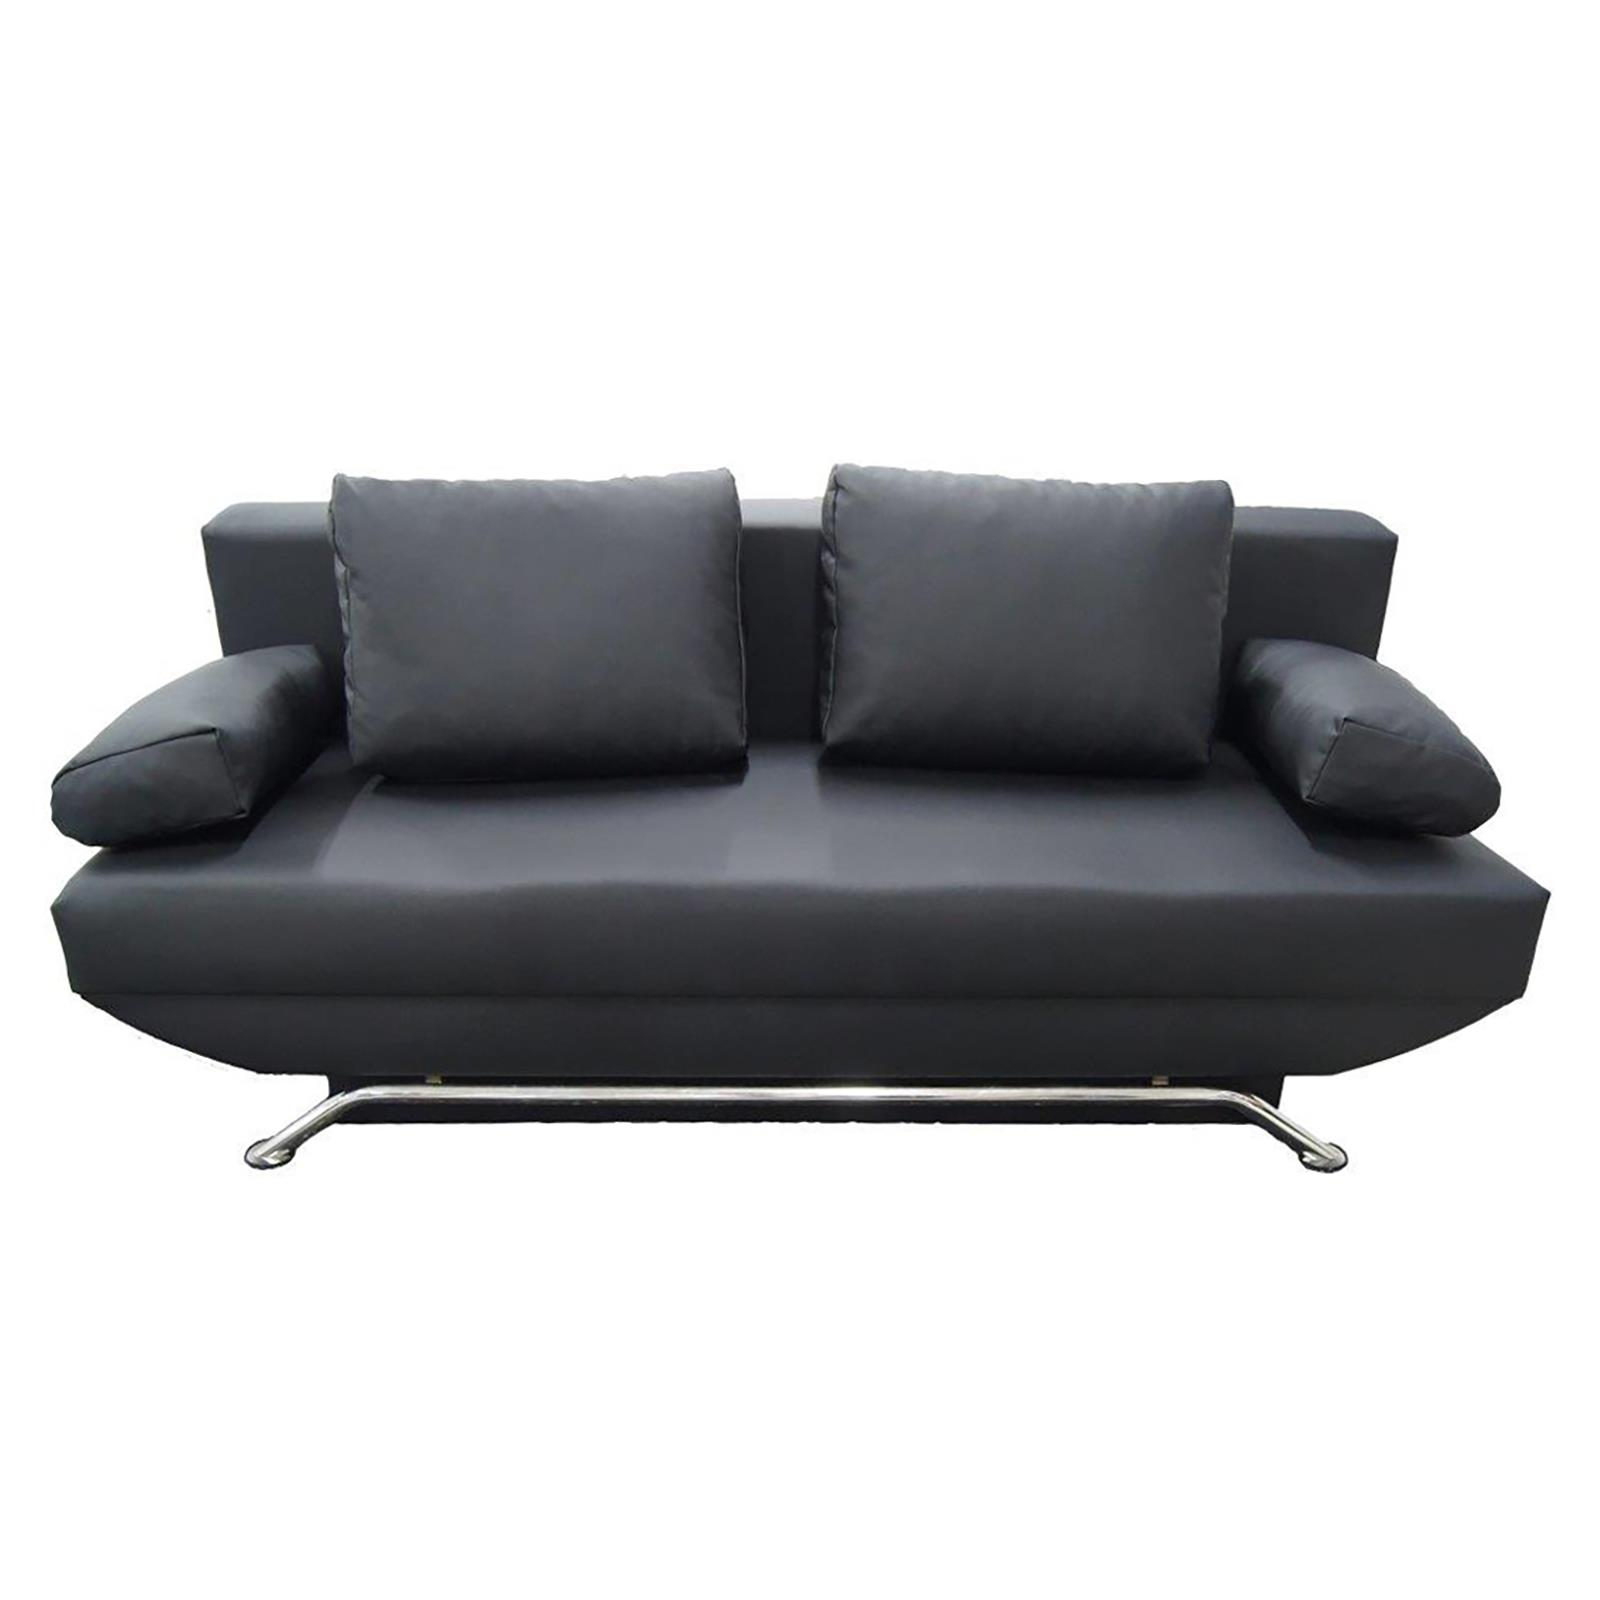 schlafsofa couch mit bettkasten in schwarz oder weiss 3. Black Bedroom Furniture Sets. Home Design Ideas